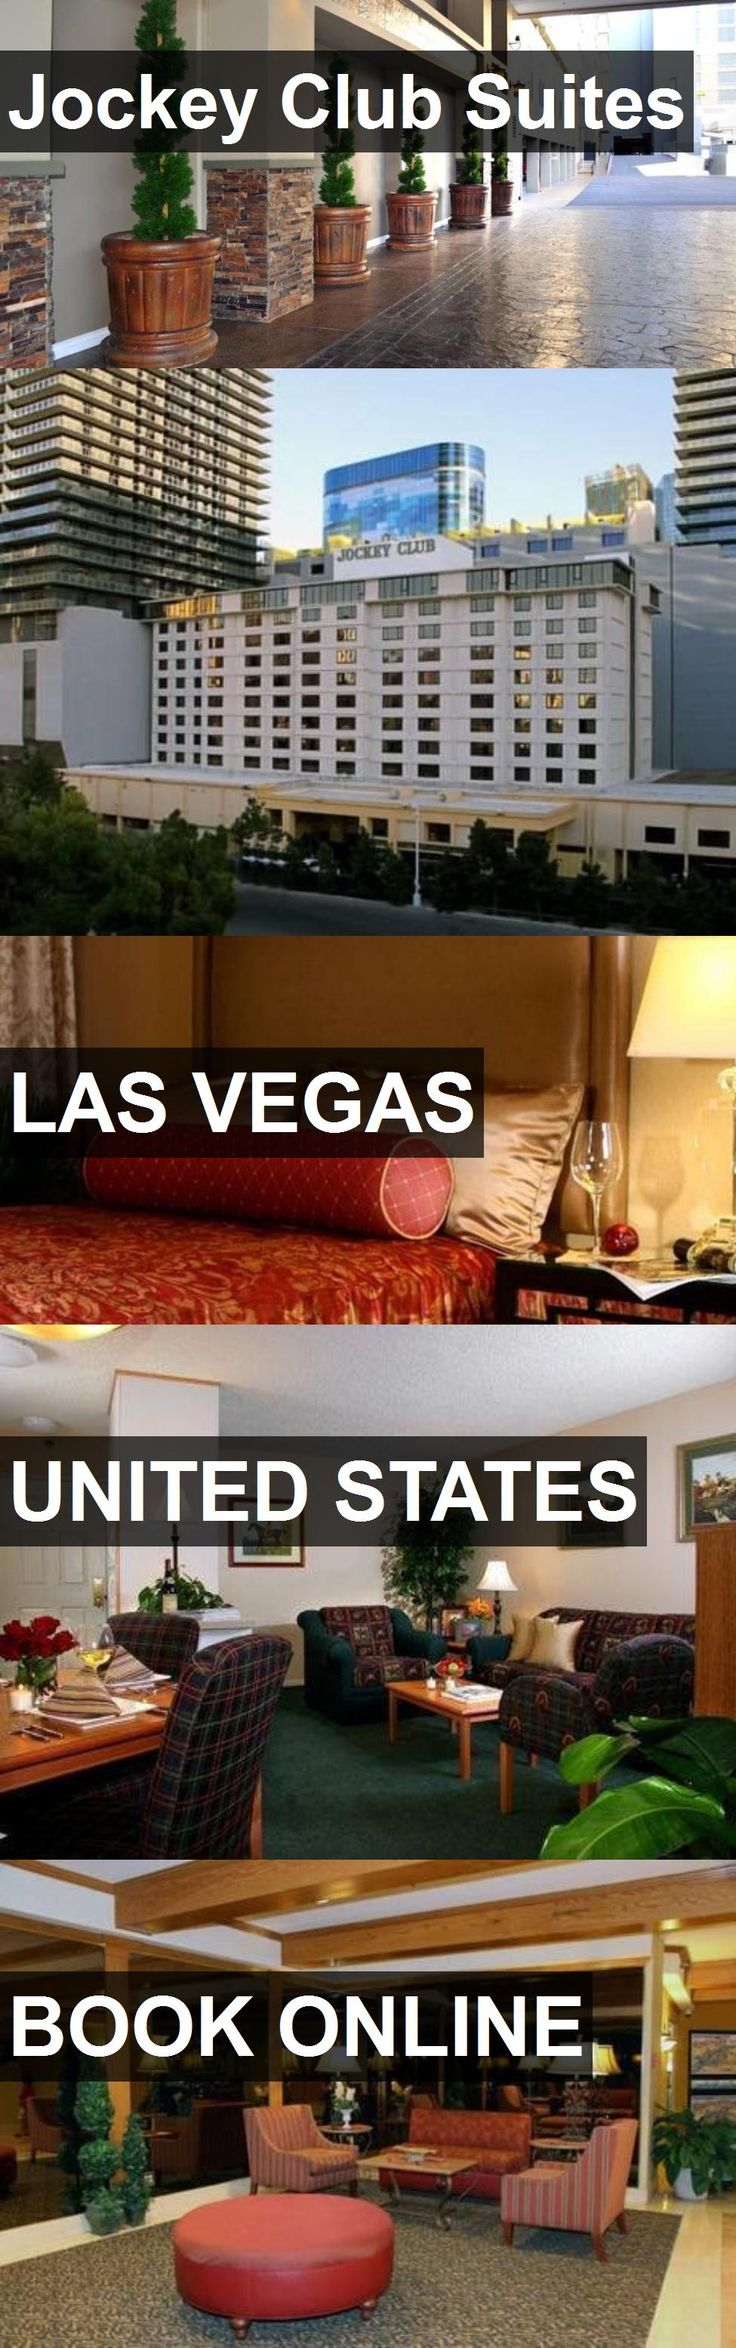 Hotel Jockey Club Suites in Las Vegas, United States. For more information, photos, reviews and best prices please follow the link. #UnitedStates #LasVegas #JockeyClubSuites #hotel #travel #vacation